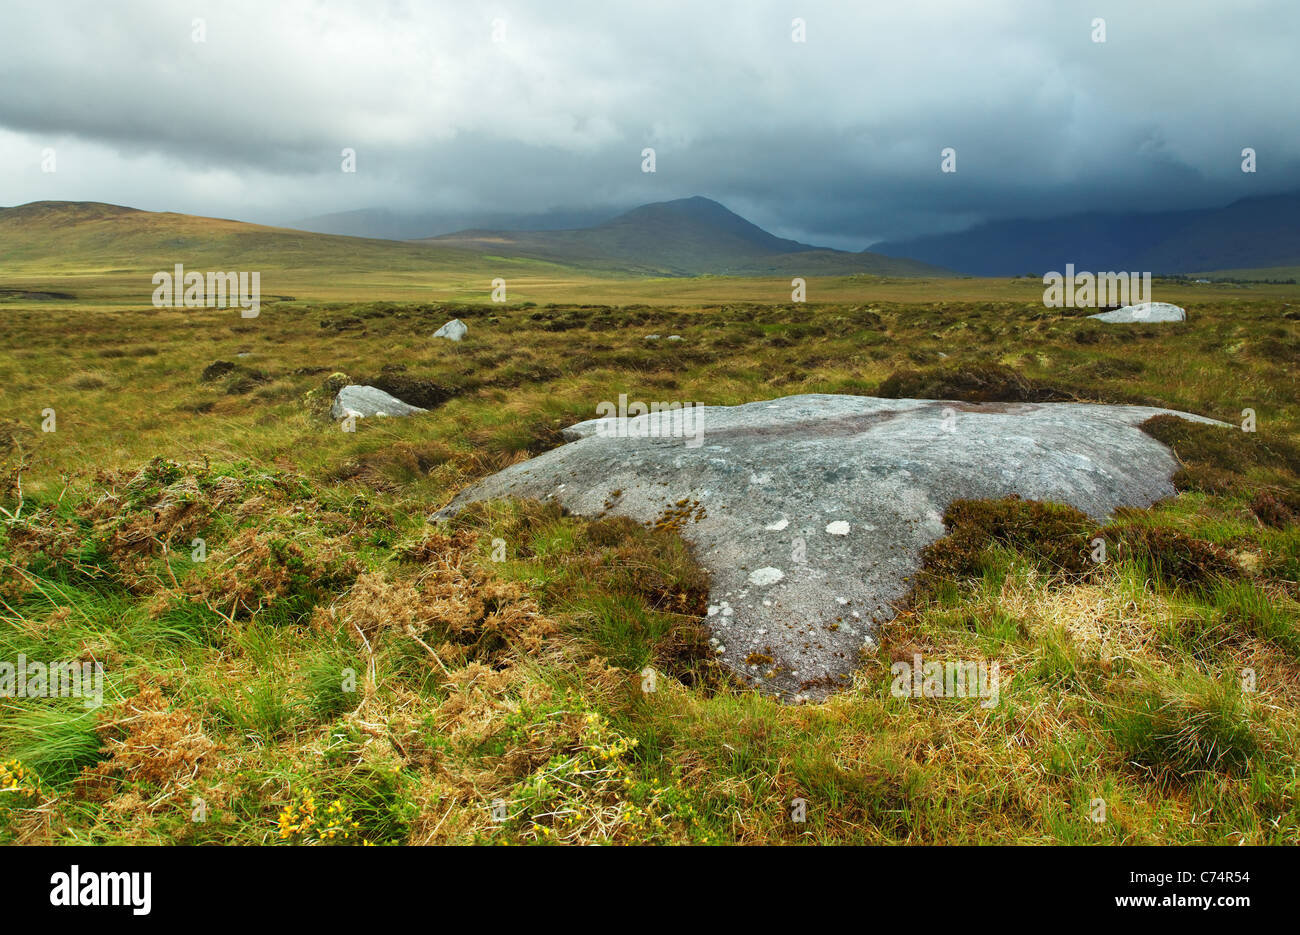 Stormy weather over Connemara countrside, Doolough Valley, County Mayo, Republic of Ireland - Stock Image